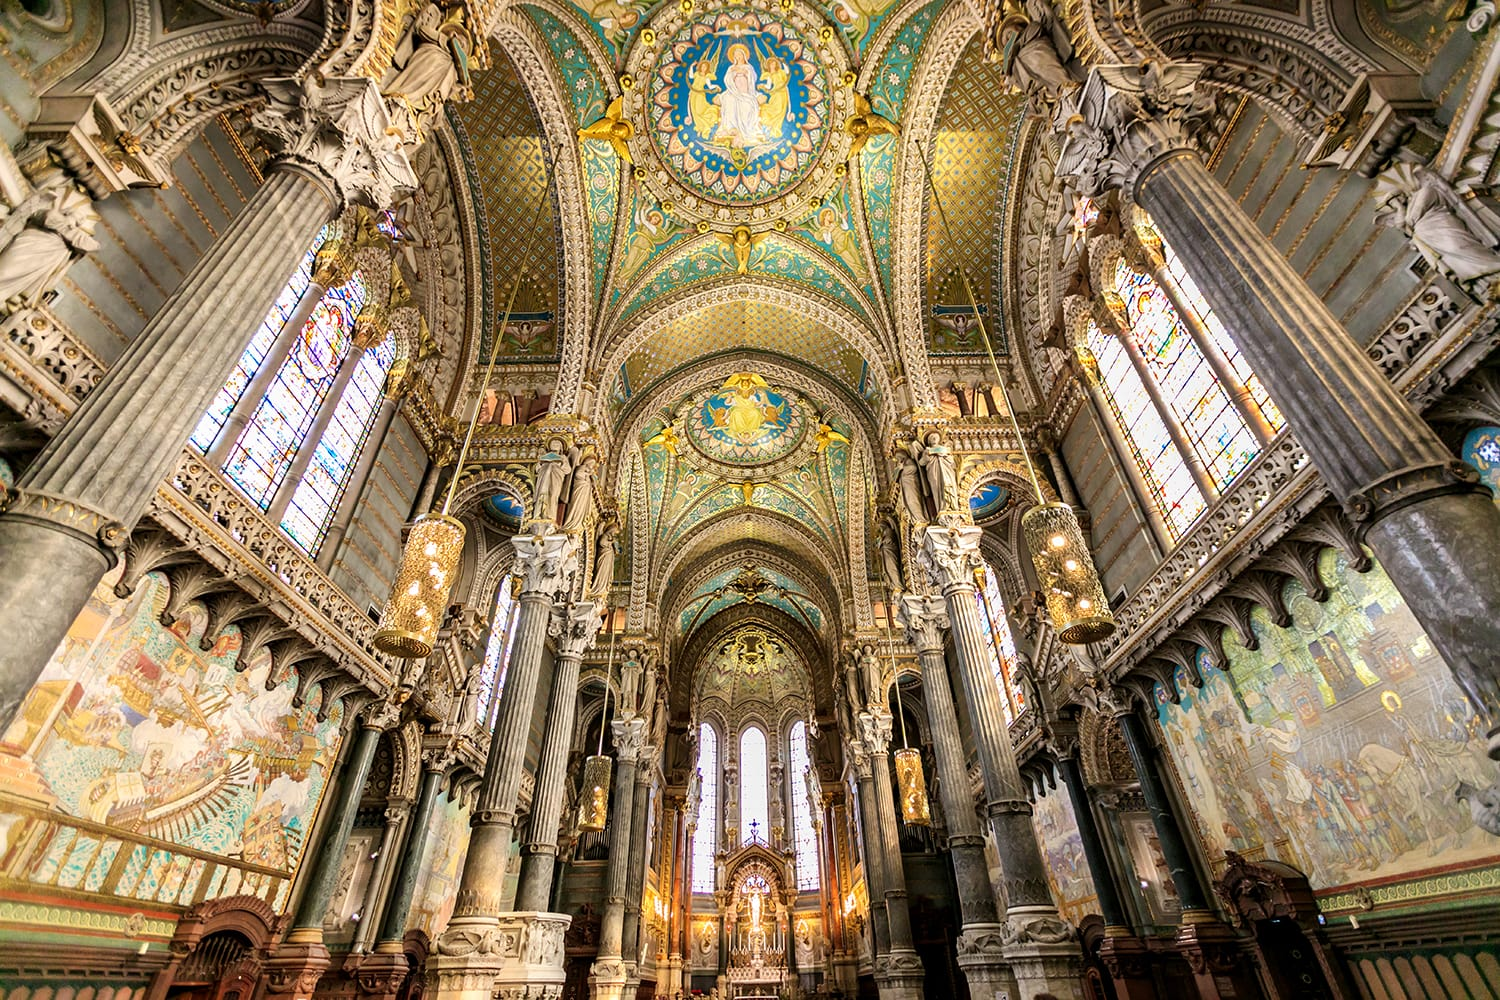 Interiors in Notre Dame de Fourviere basilica on 15 Dec 2015, paintings and details of Notre Dame de Fourviere basilica, Lyon, France